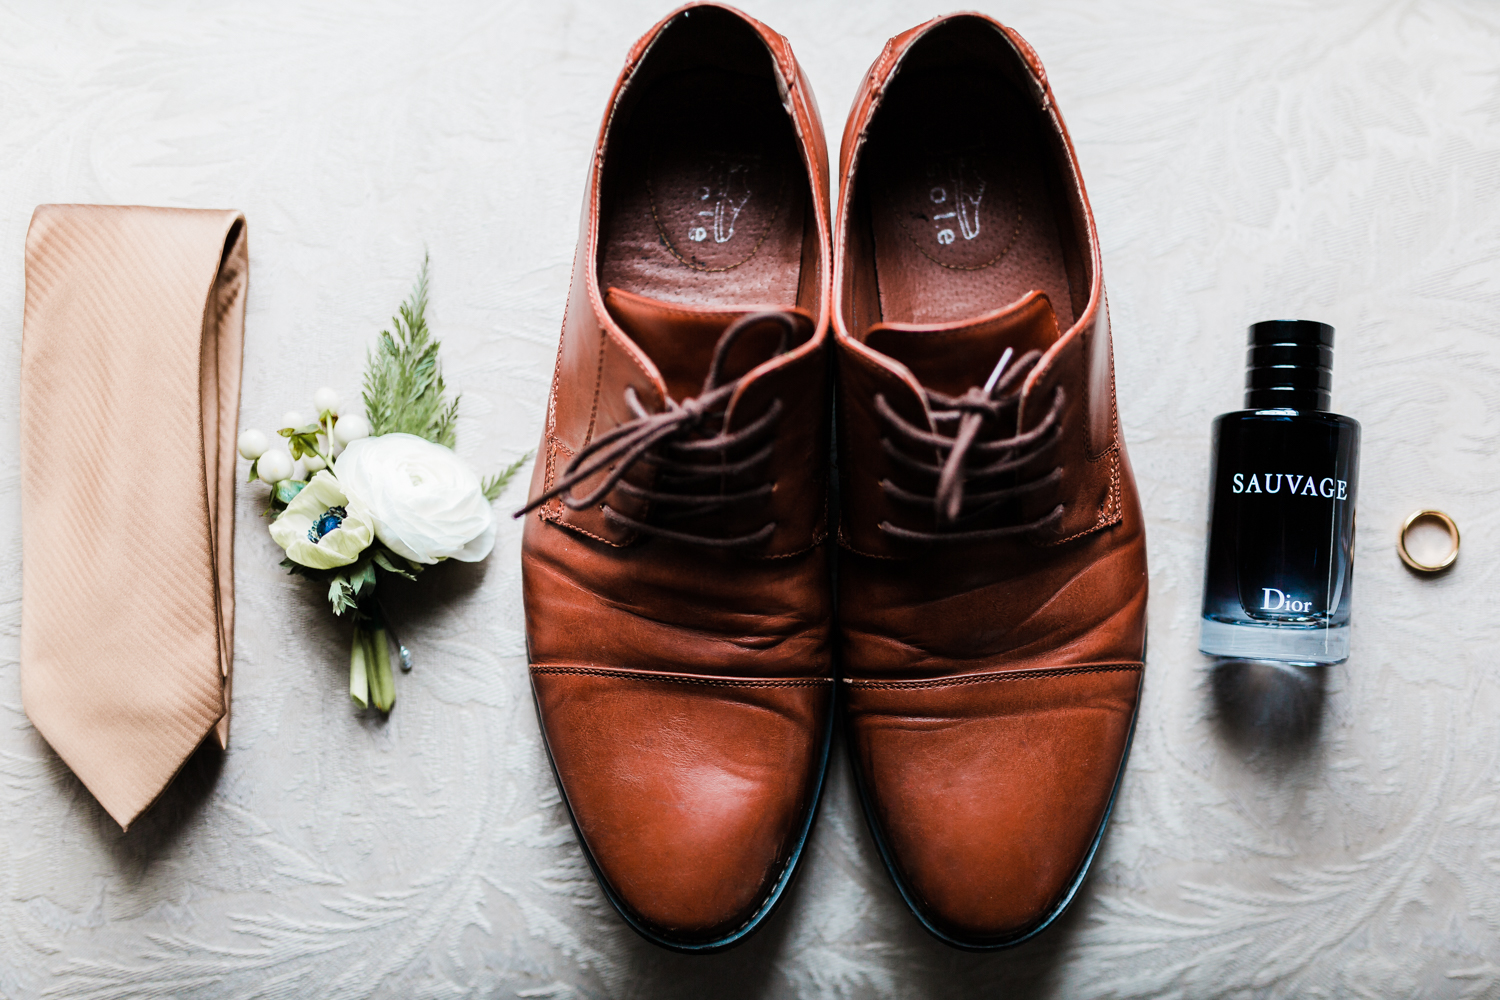 grooms shoes, tie, cologne, ring and boutonniere - groom details - md wedding photographer and videographer